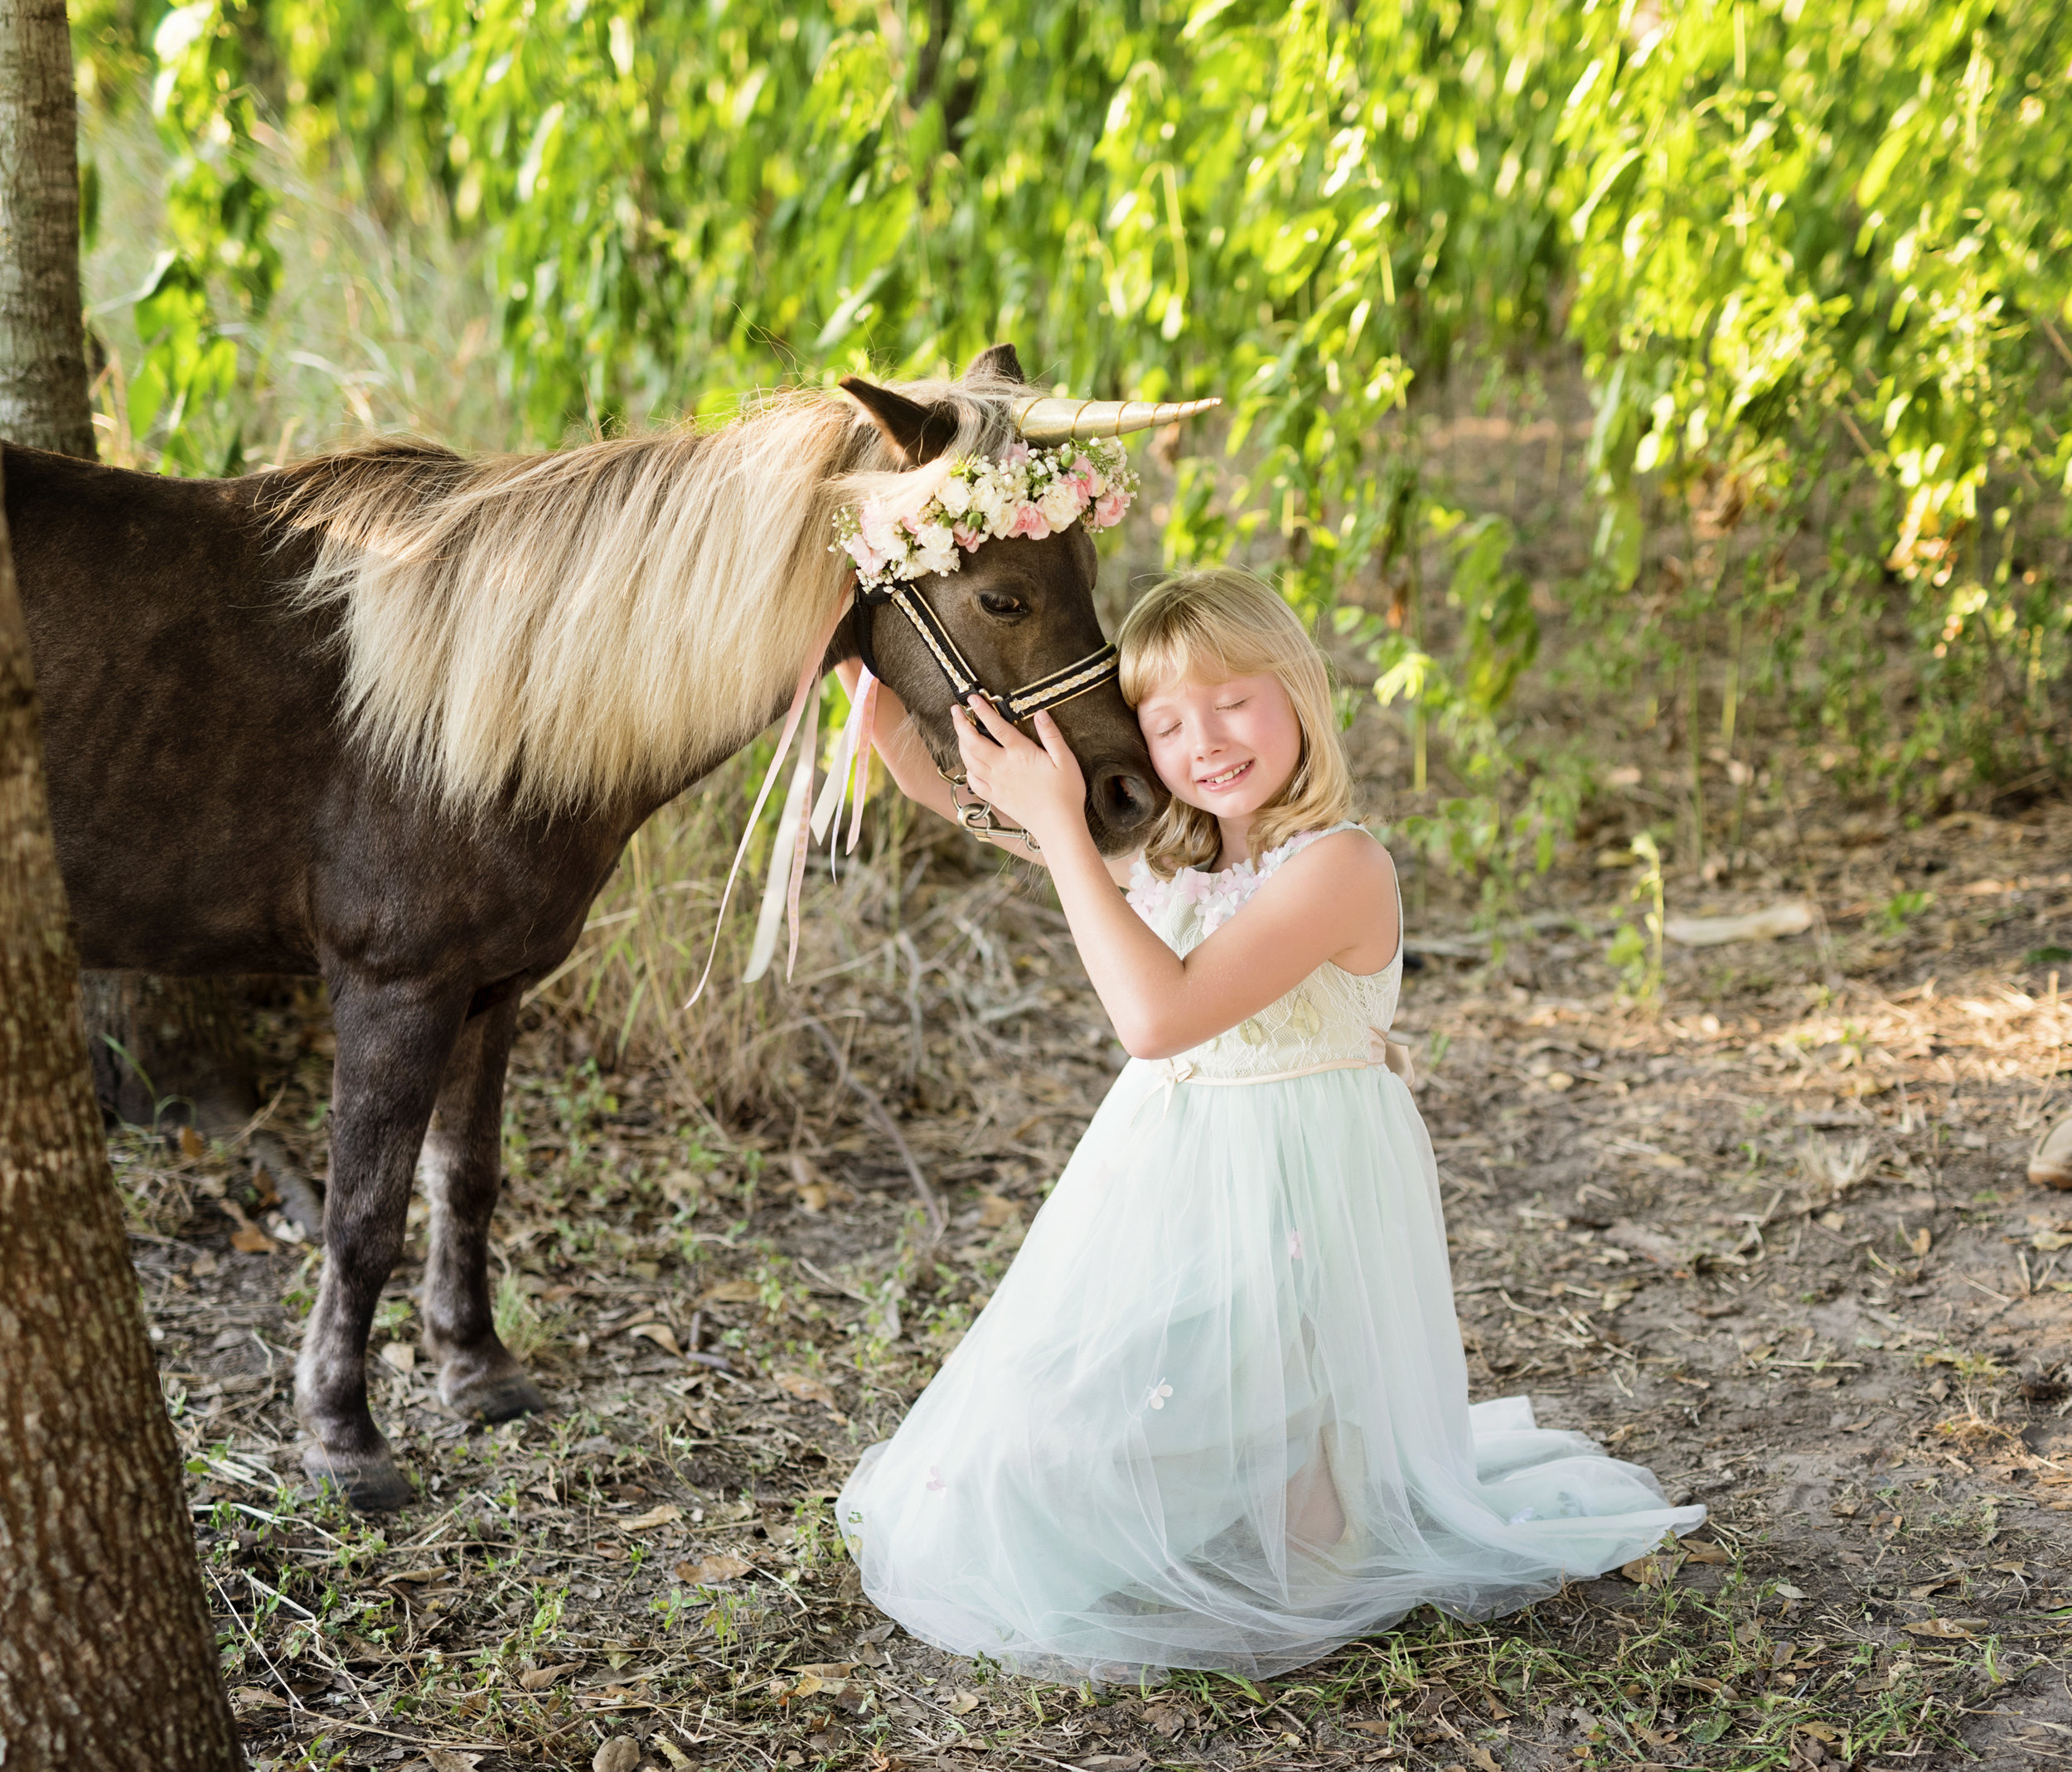 Unicorn mini photos, pony and girls, flower crowns JHP photography